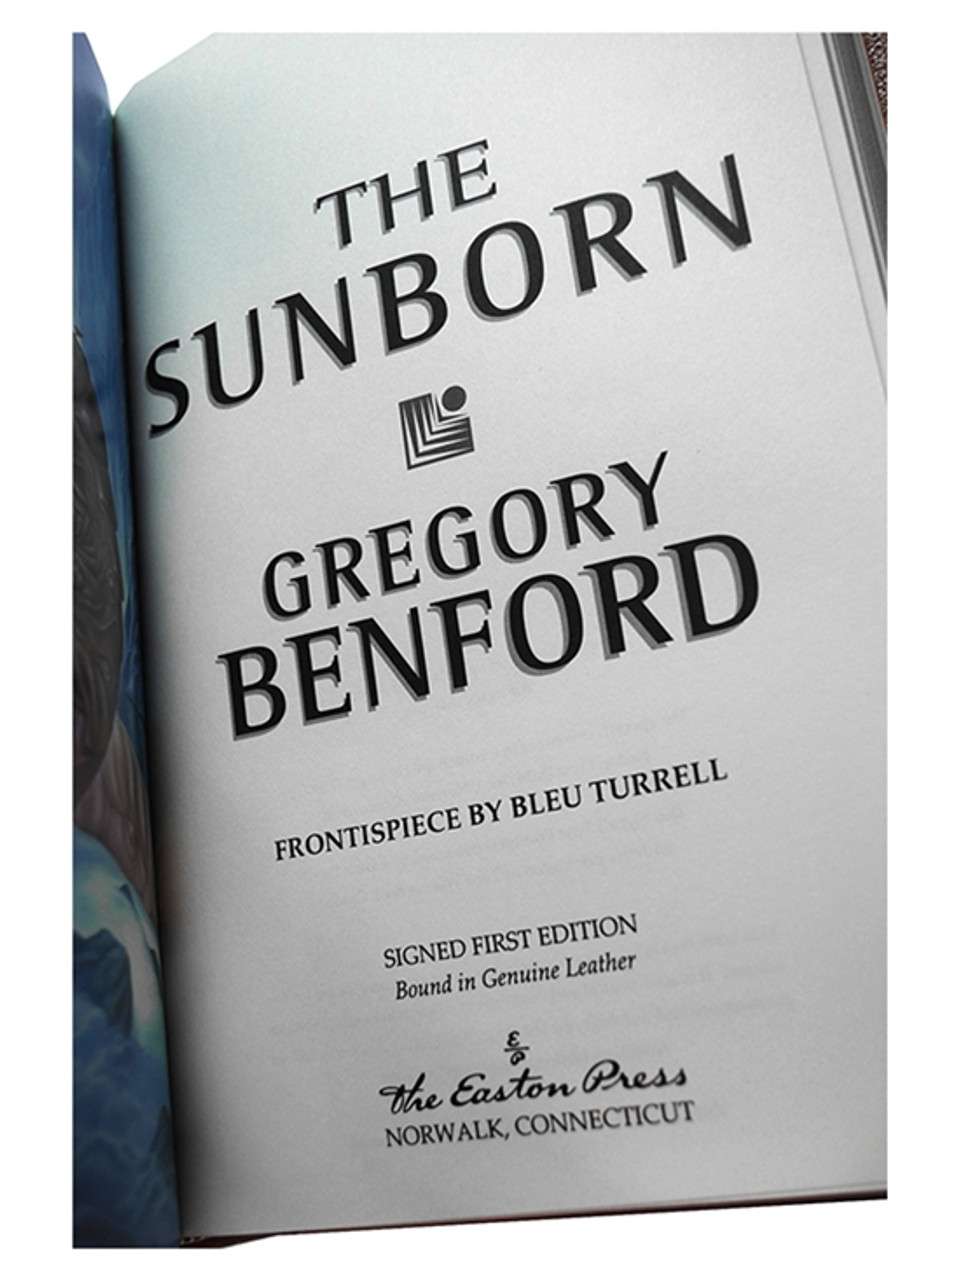 """Easton Press """"The Sunborn"""" Gregory Benford, Signed First Edition, #111 of 900, Leather Bound [Very Fine]"""